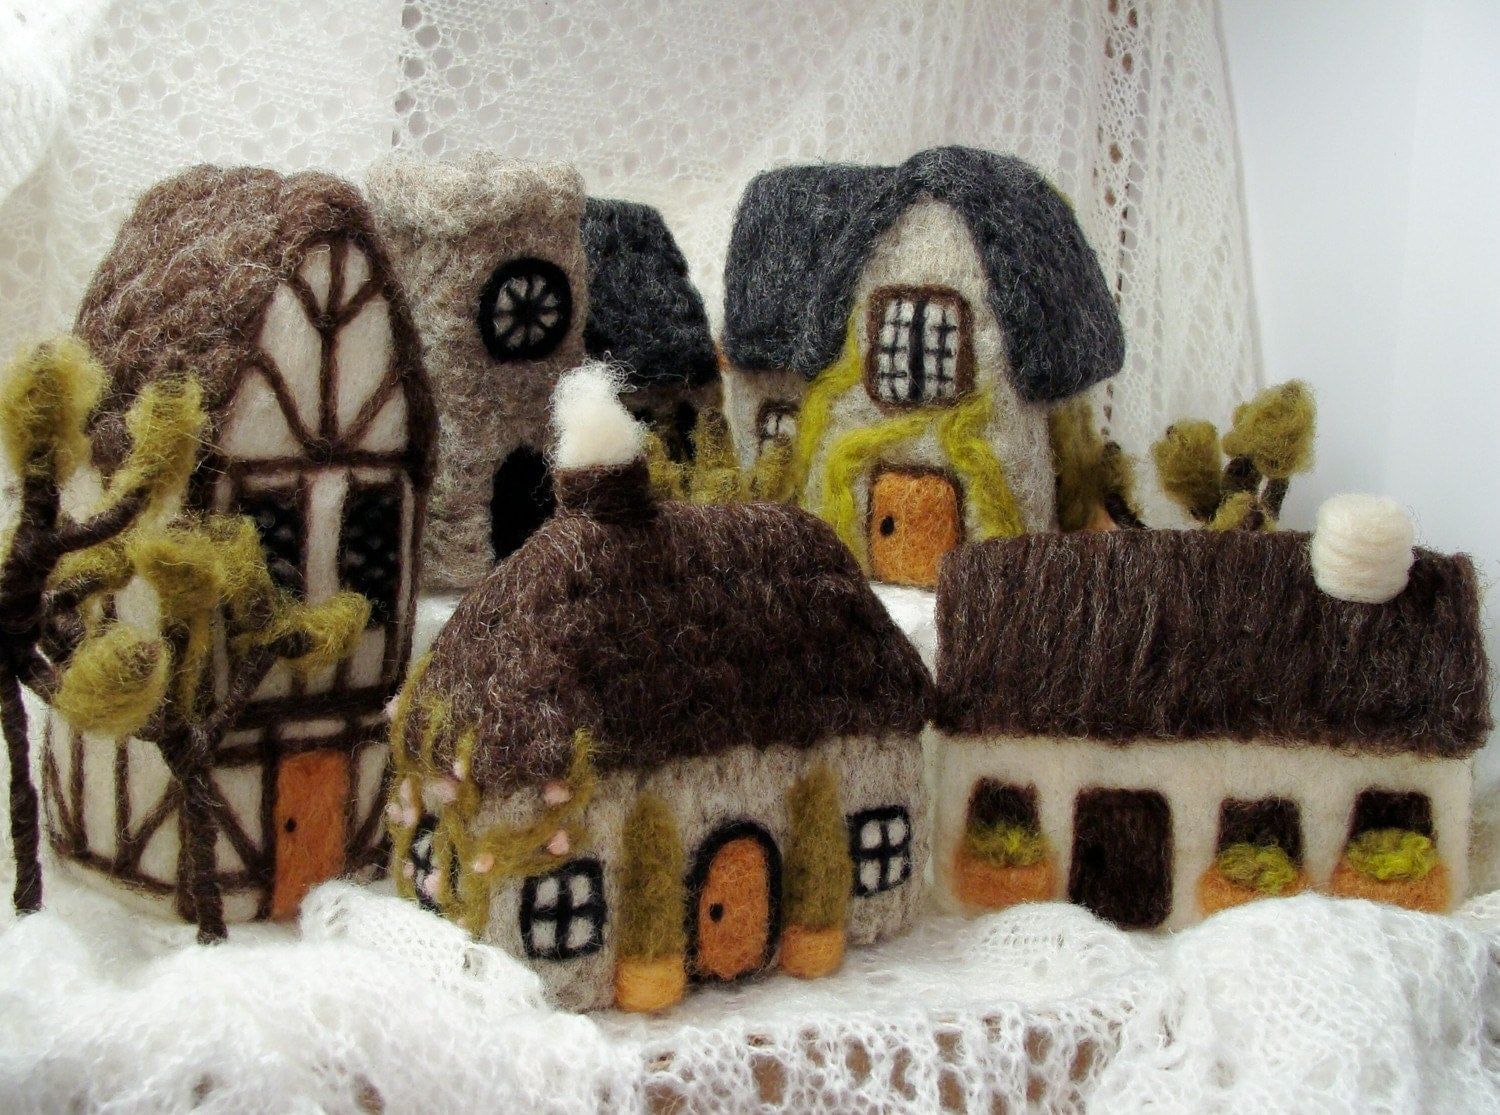 Needle Felted Medieval Village Wool Soft Sculpture